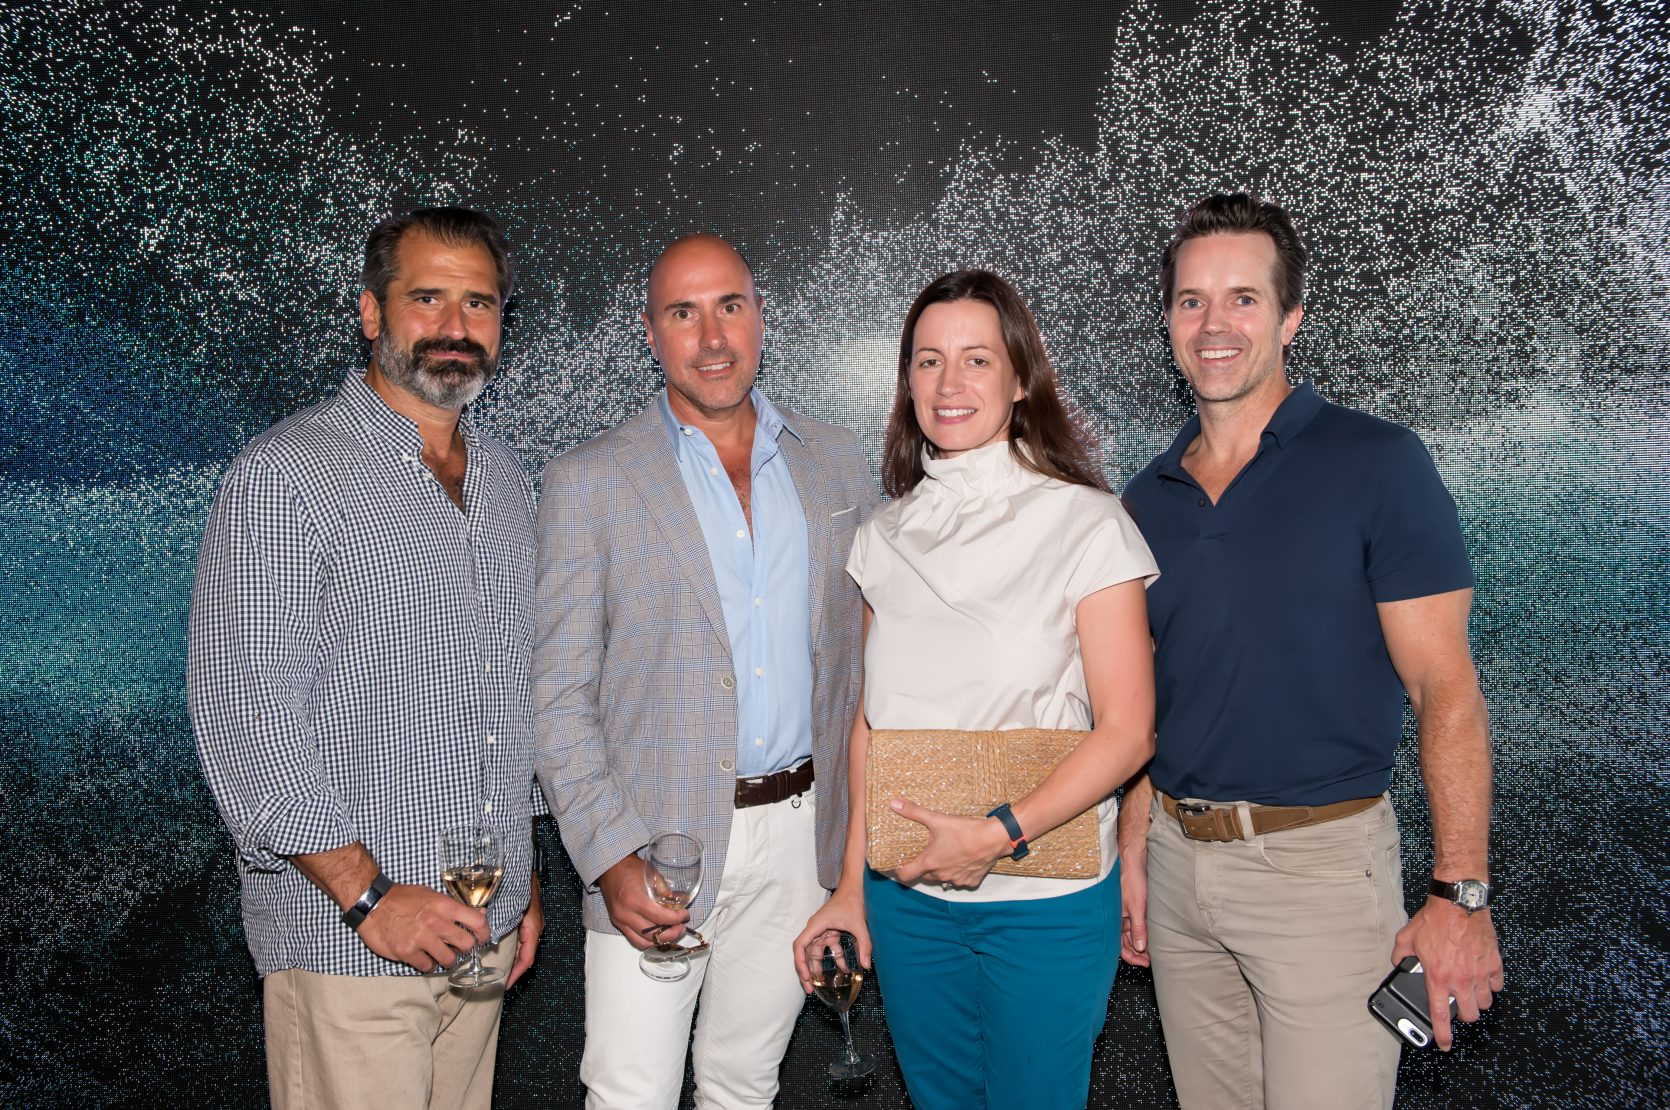 Lance Brown, Jon Vaccari and Becca Kelly and Steve Fleming